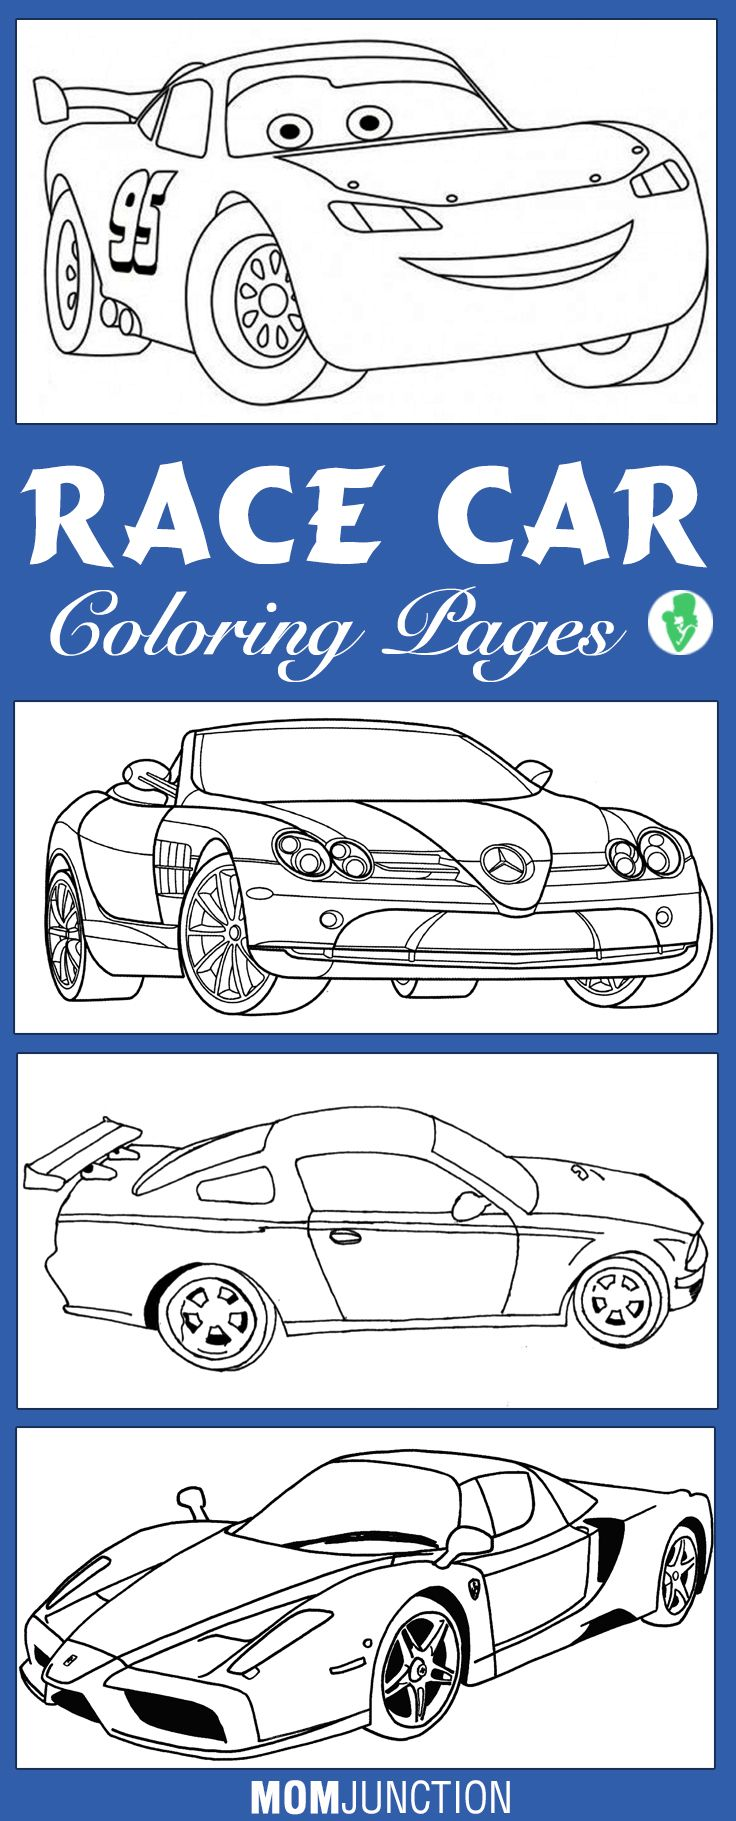 Car coloring games online free - Top 25 Free Printable Race Car Coloring Pages Online